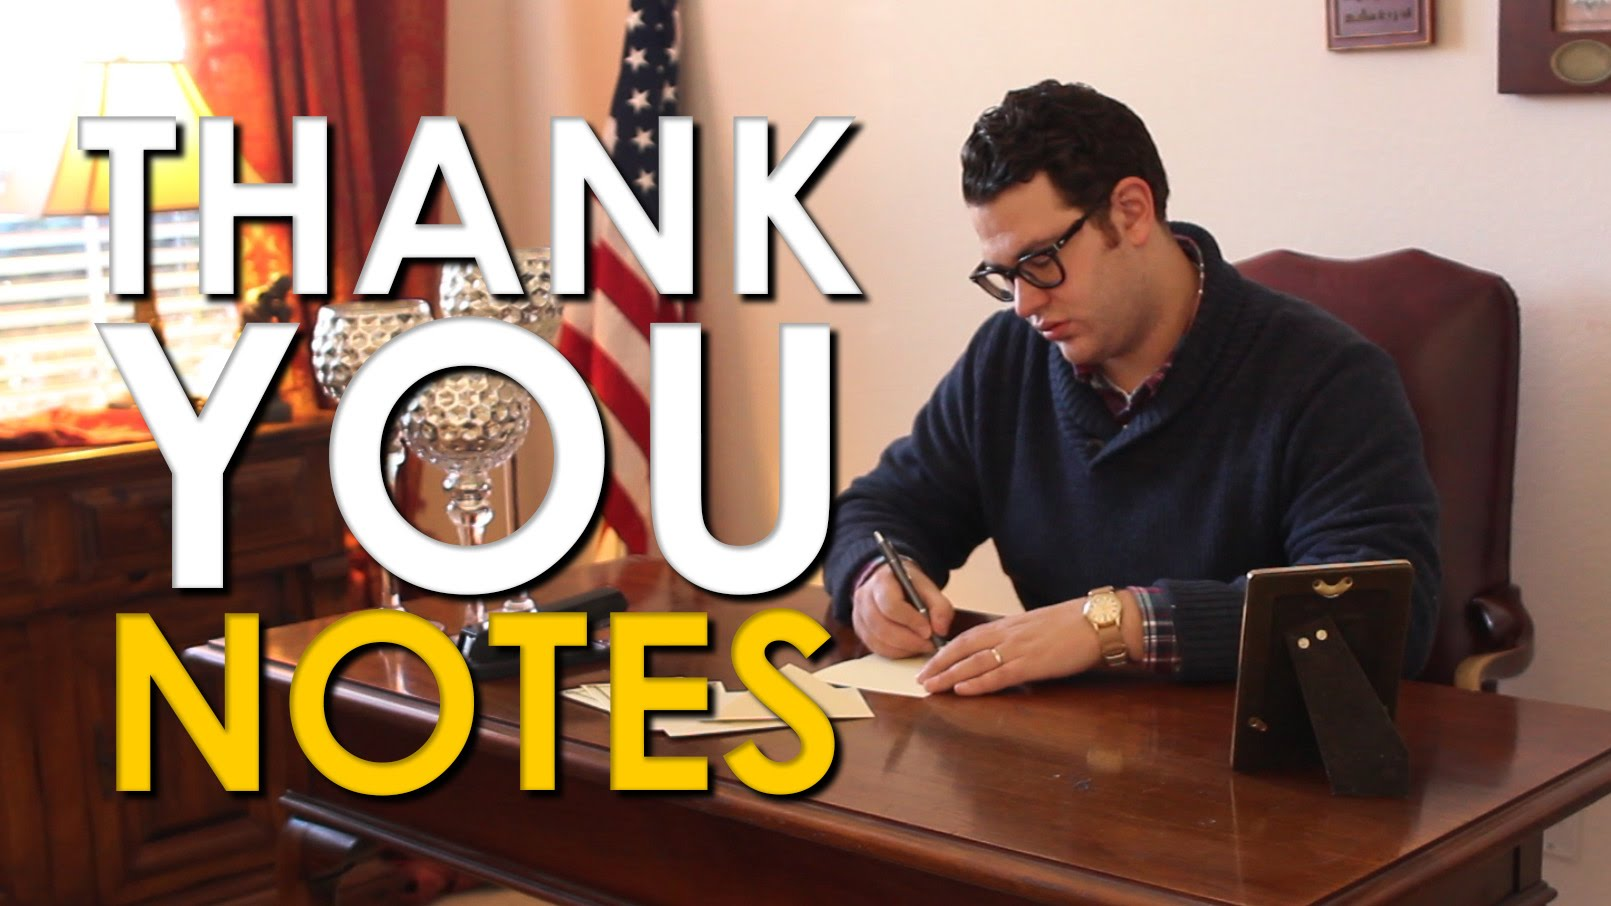 How to Write a Thank You Note [VIDEO] | The Art of Manliness